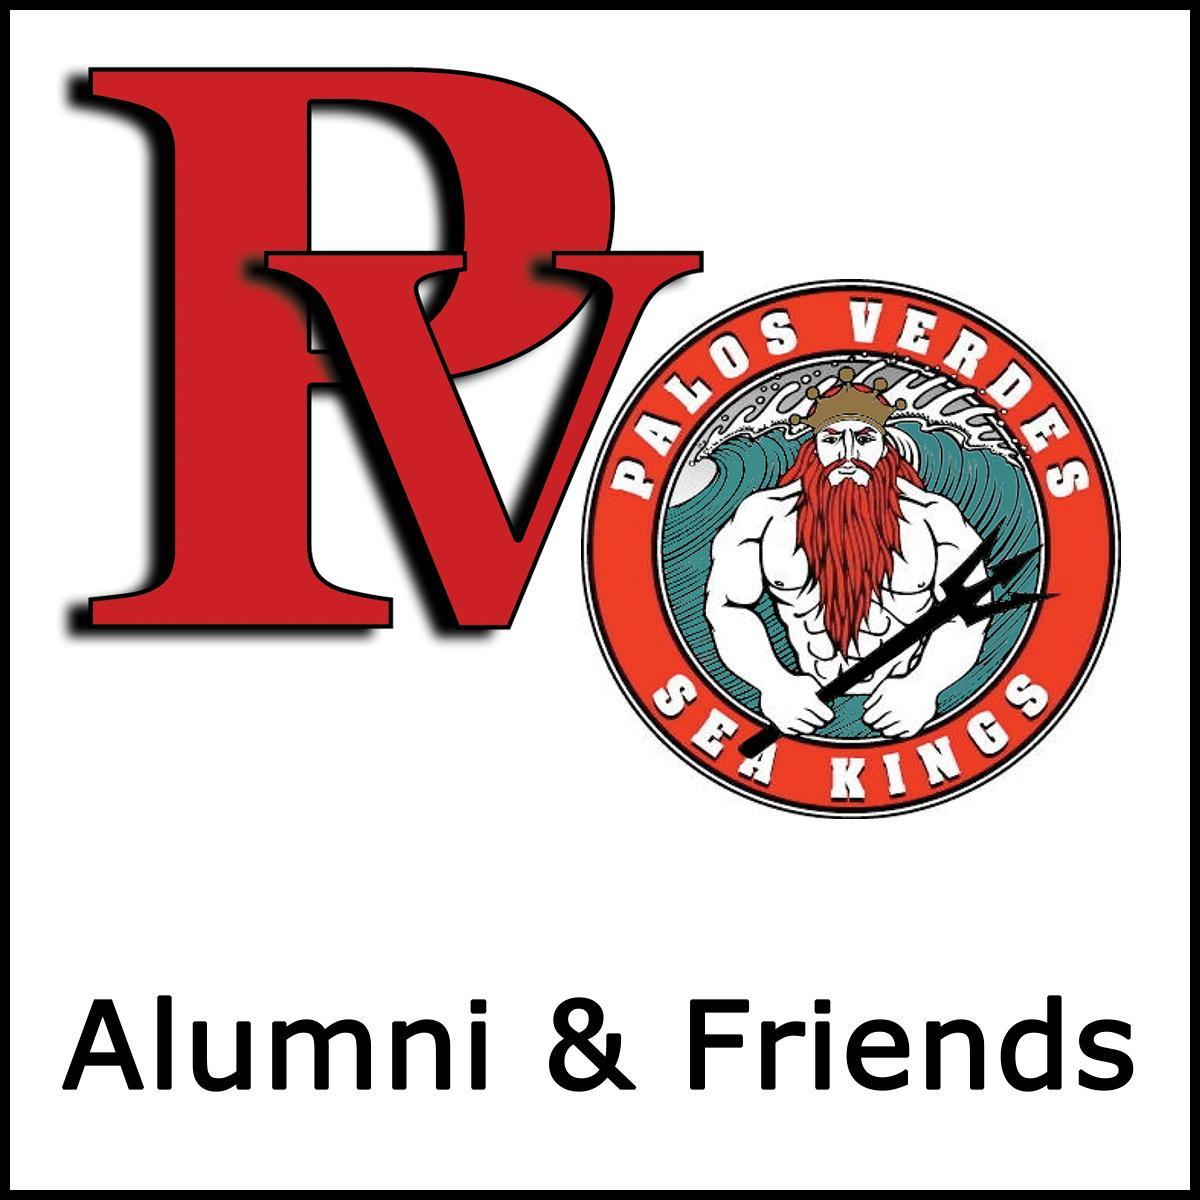 Alumni & Friends PV and Sea Kings logos